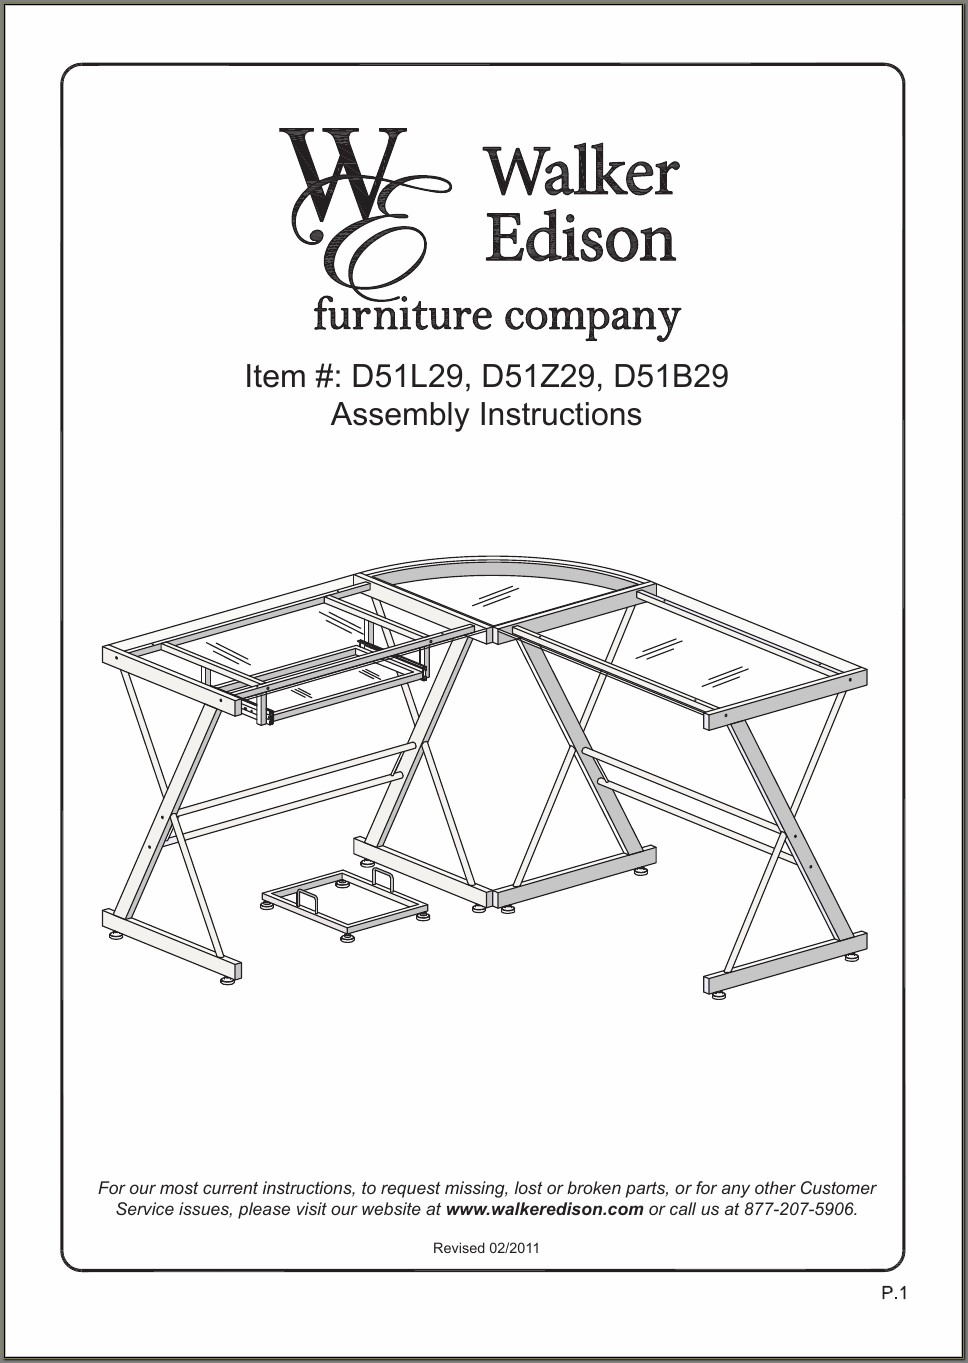 Walker Edison 3 Piece Contemporary Desk Instructions